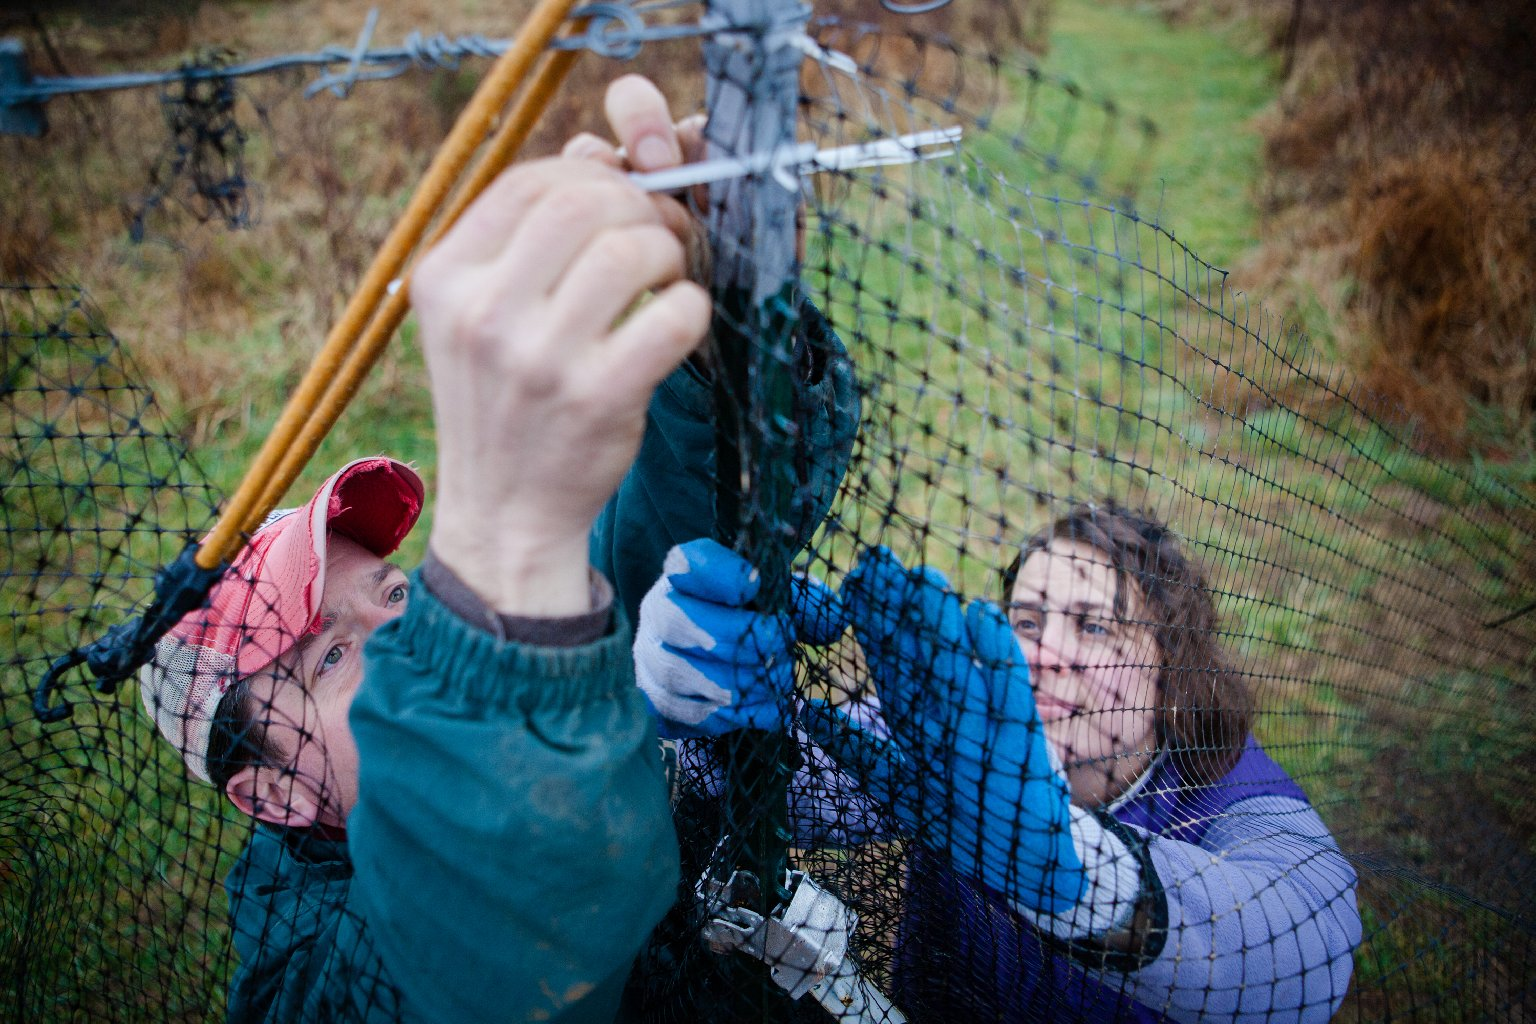 Chris and Sara work together to repair a section of fence that protects the crops from deer. Photo: Zac Visco for NPR